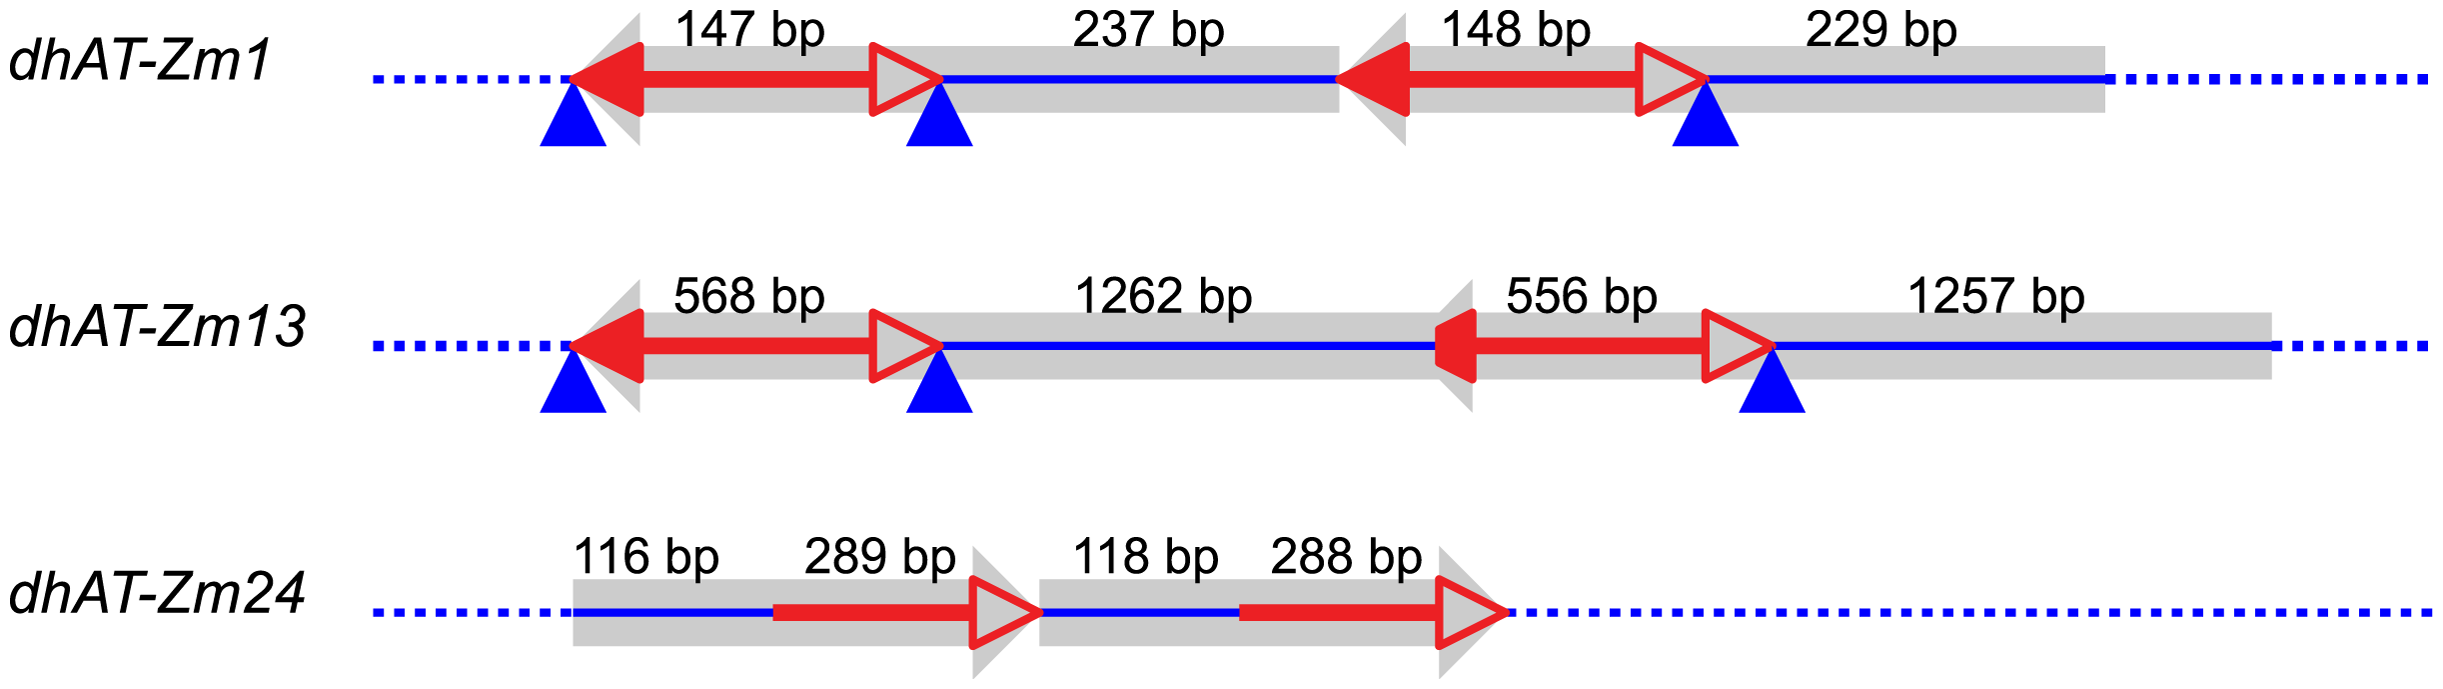 Tandem direct duplications in maize generated by Reversed-Ends Transposition.